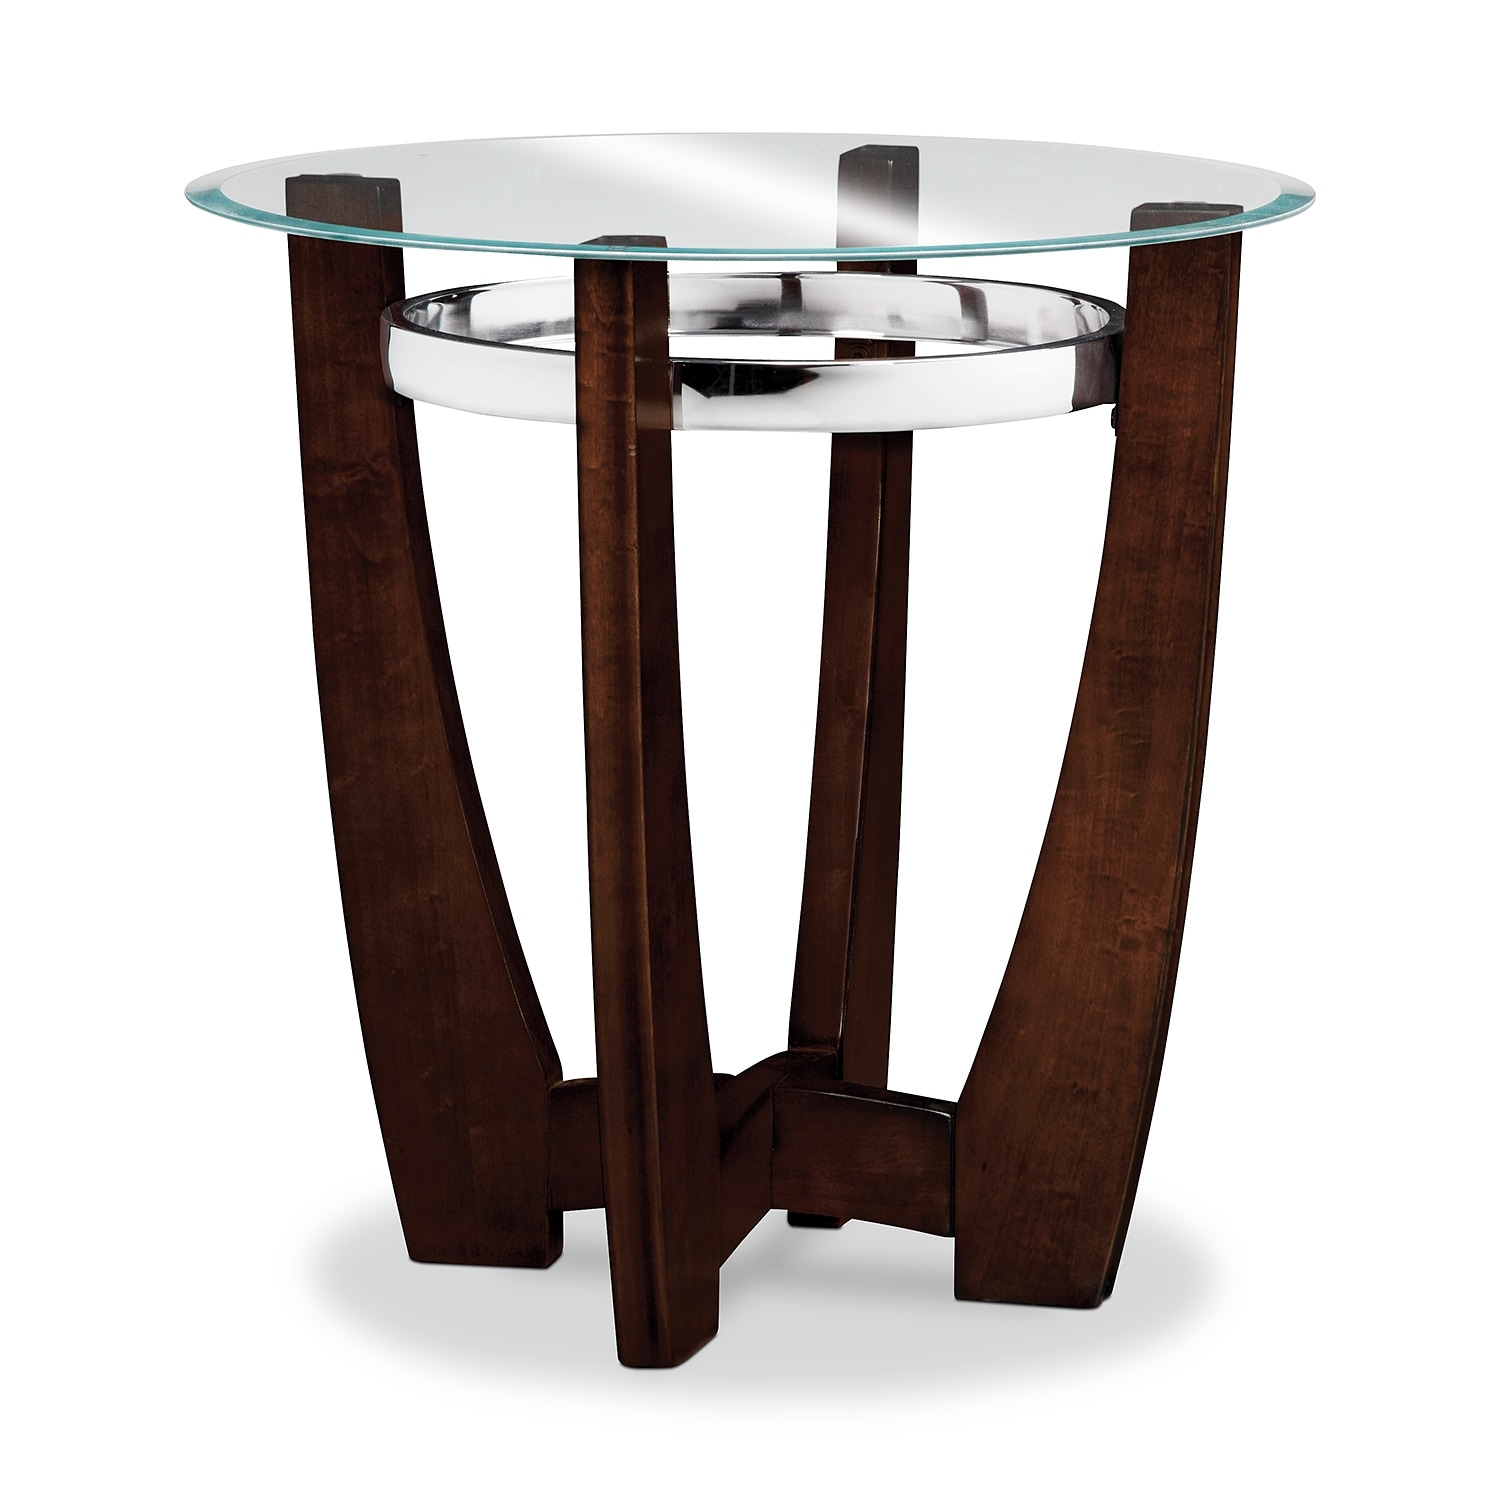 Pin By Product Bureau On Tables Coffee Side: Alcove Cocktail Table And 2 End Tables - Merlot